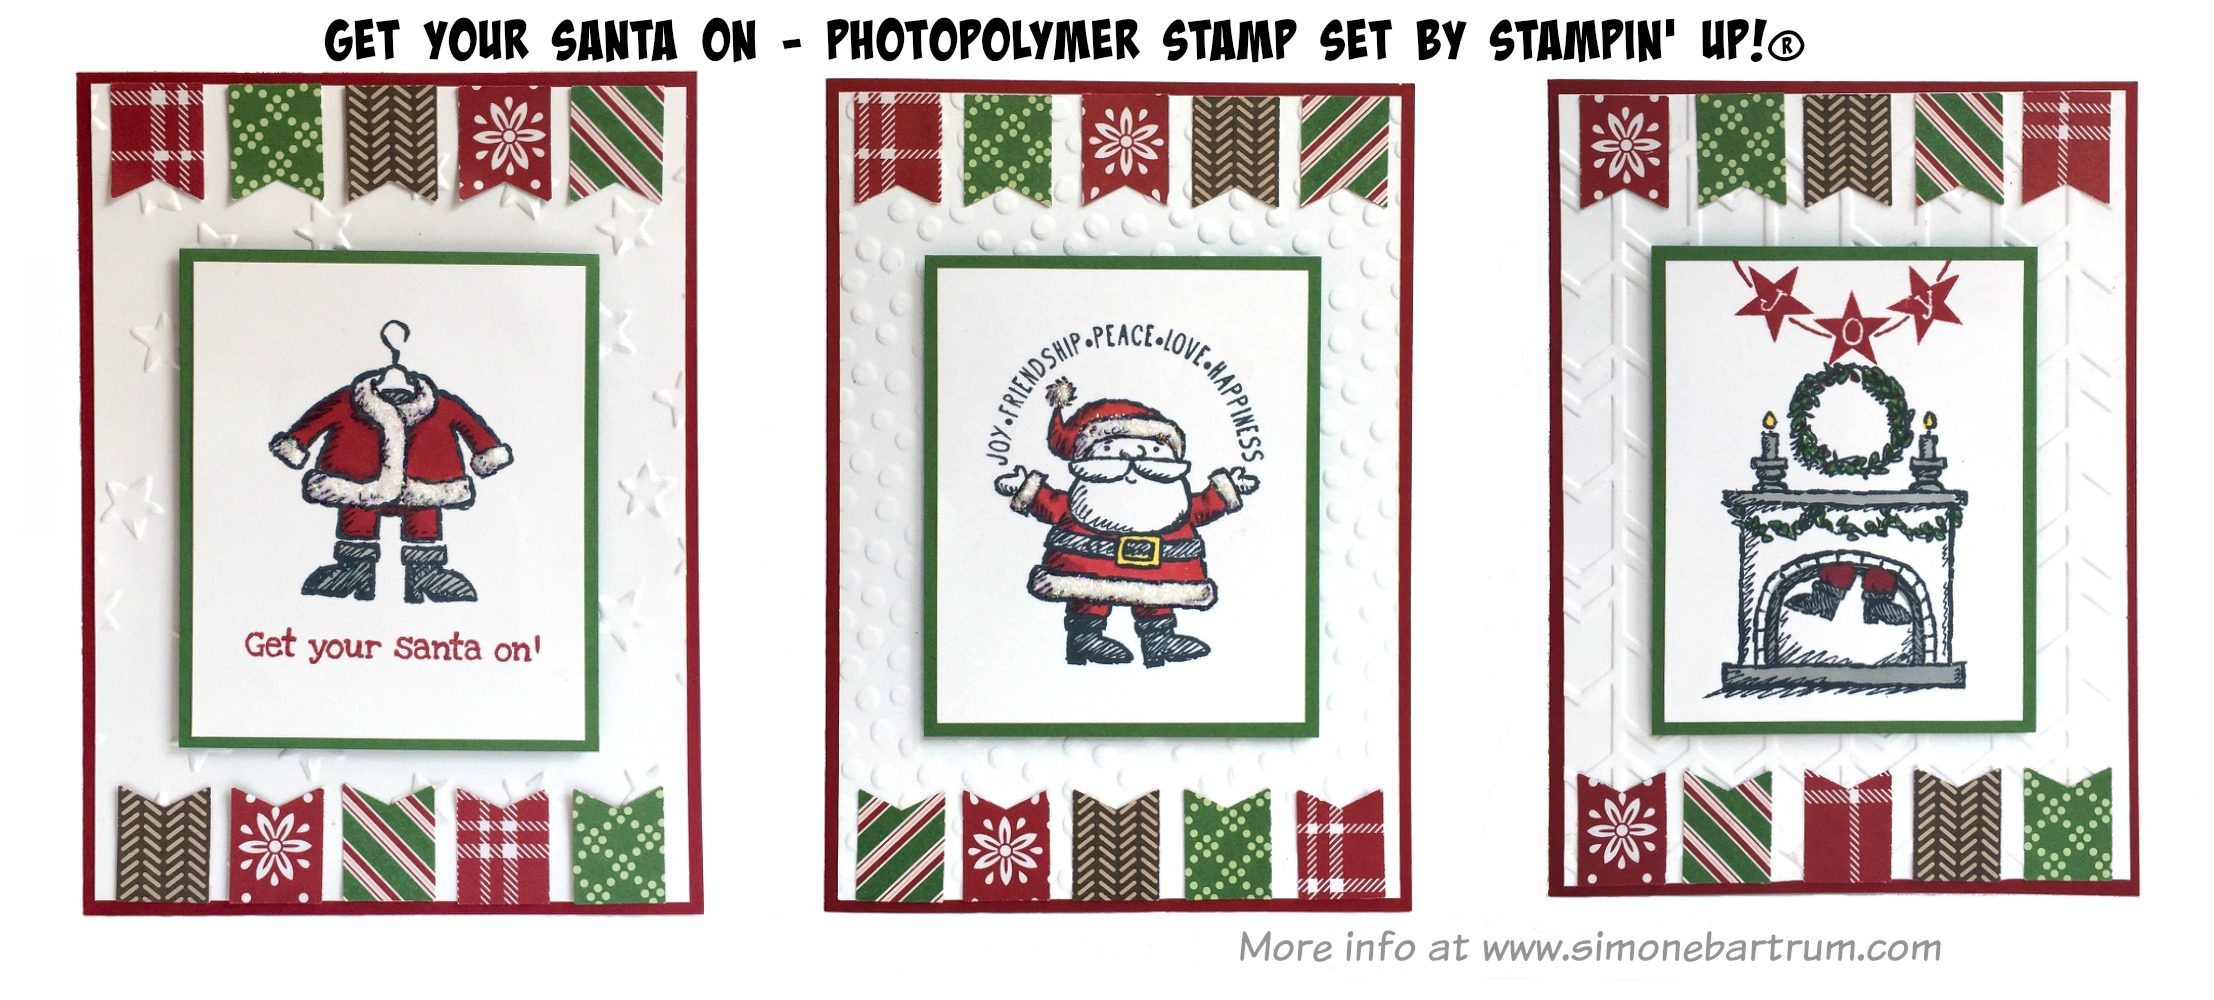 Get Your Santa On - Christmas cards (www.simonebartrum.com)